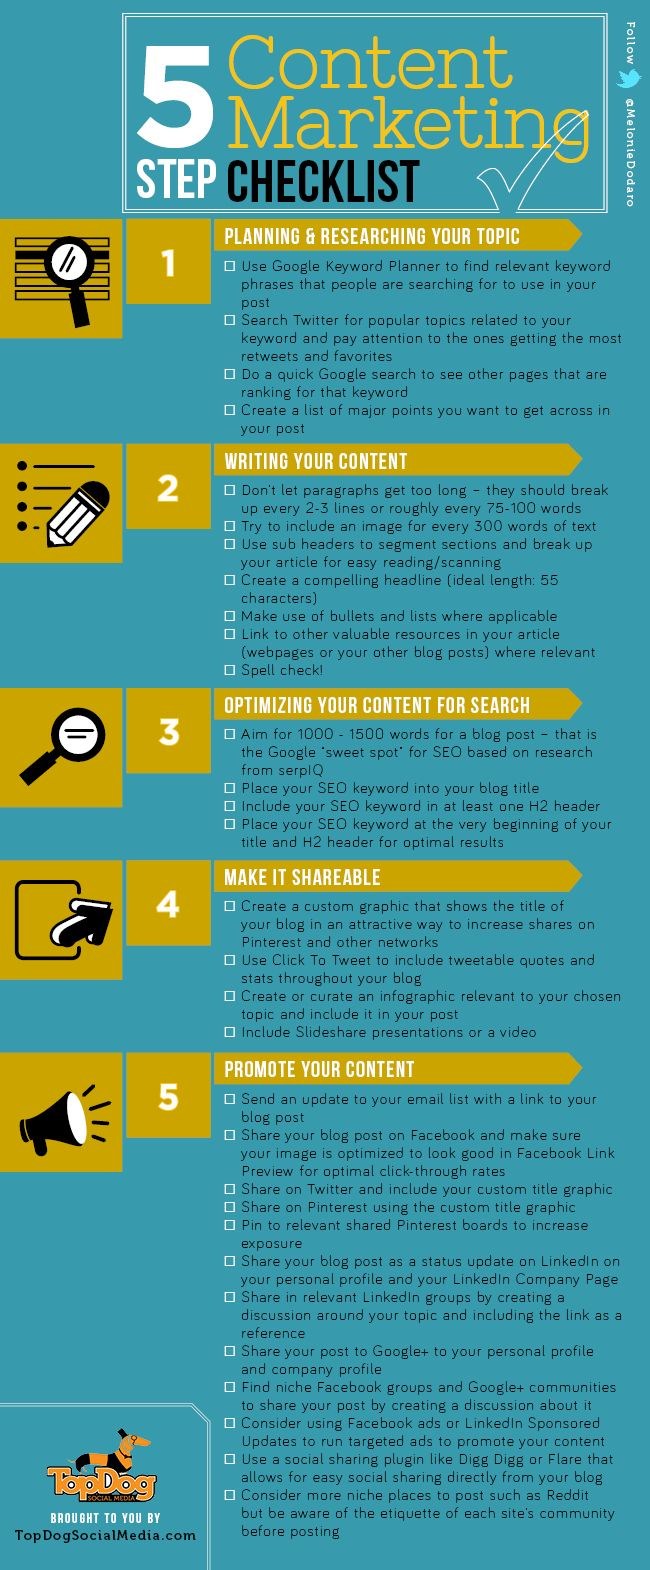 5-Step Content Marketing Step Checklist 610152b3365bf0664b38c6aacad87904